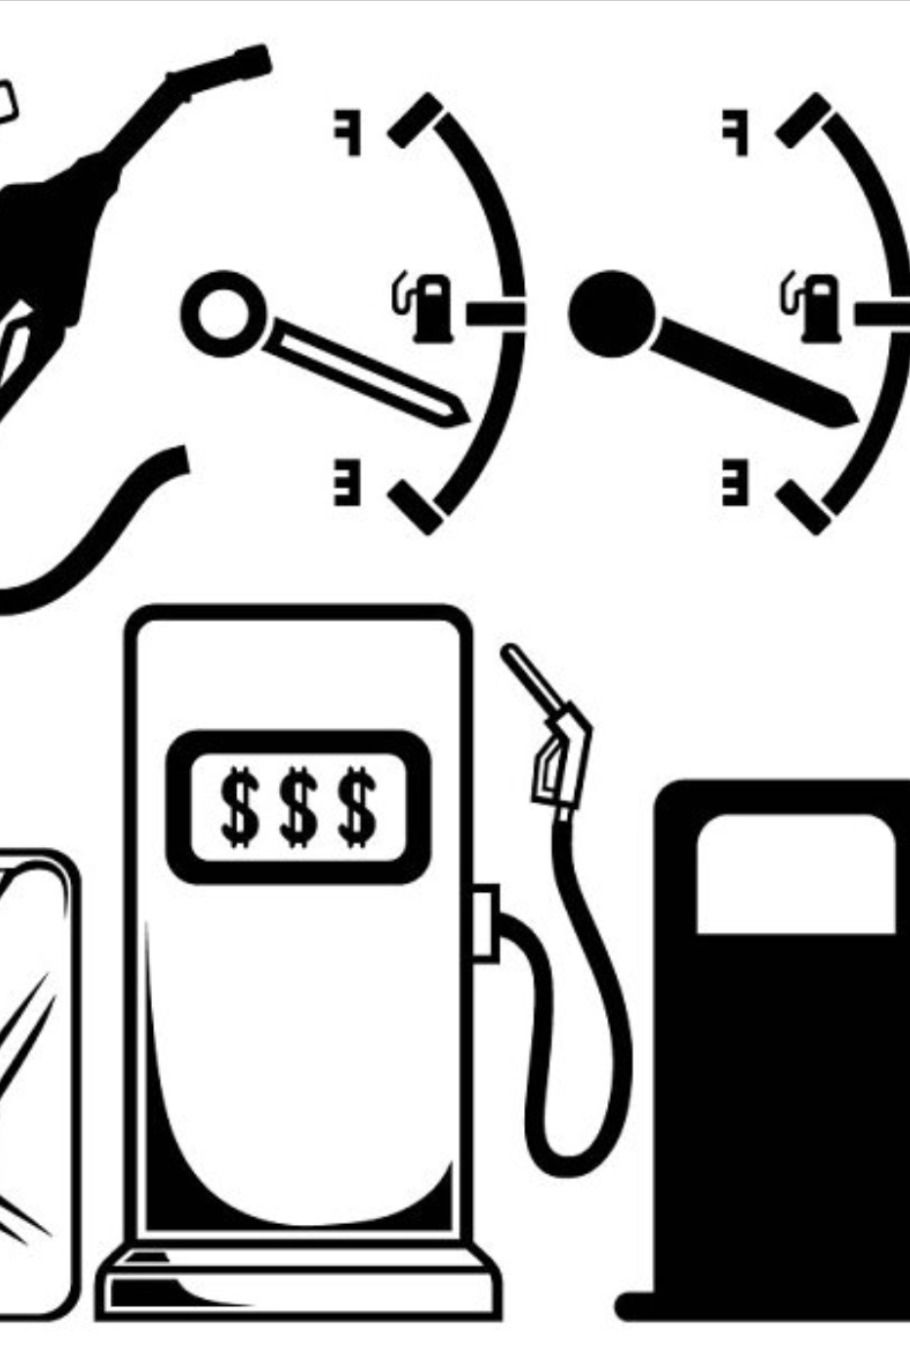 Gas Station In 2020 Hand Drawn Icons Gas Station How To Draw Hands